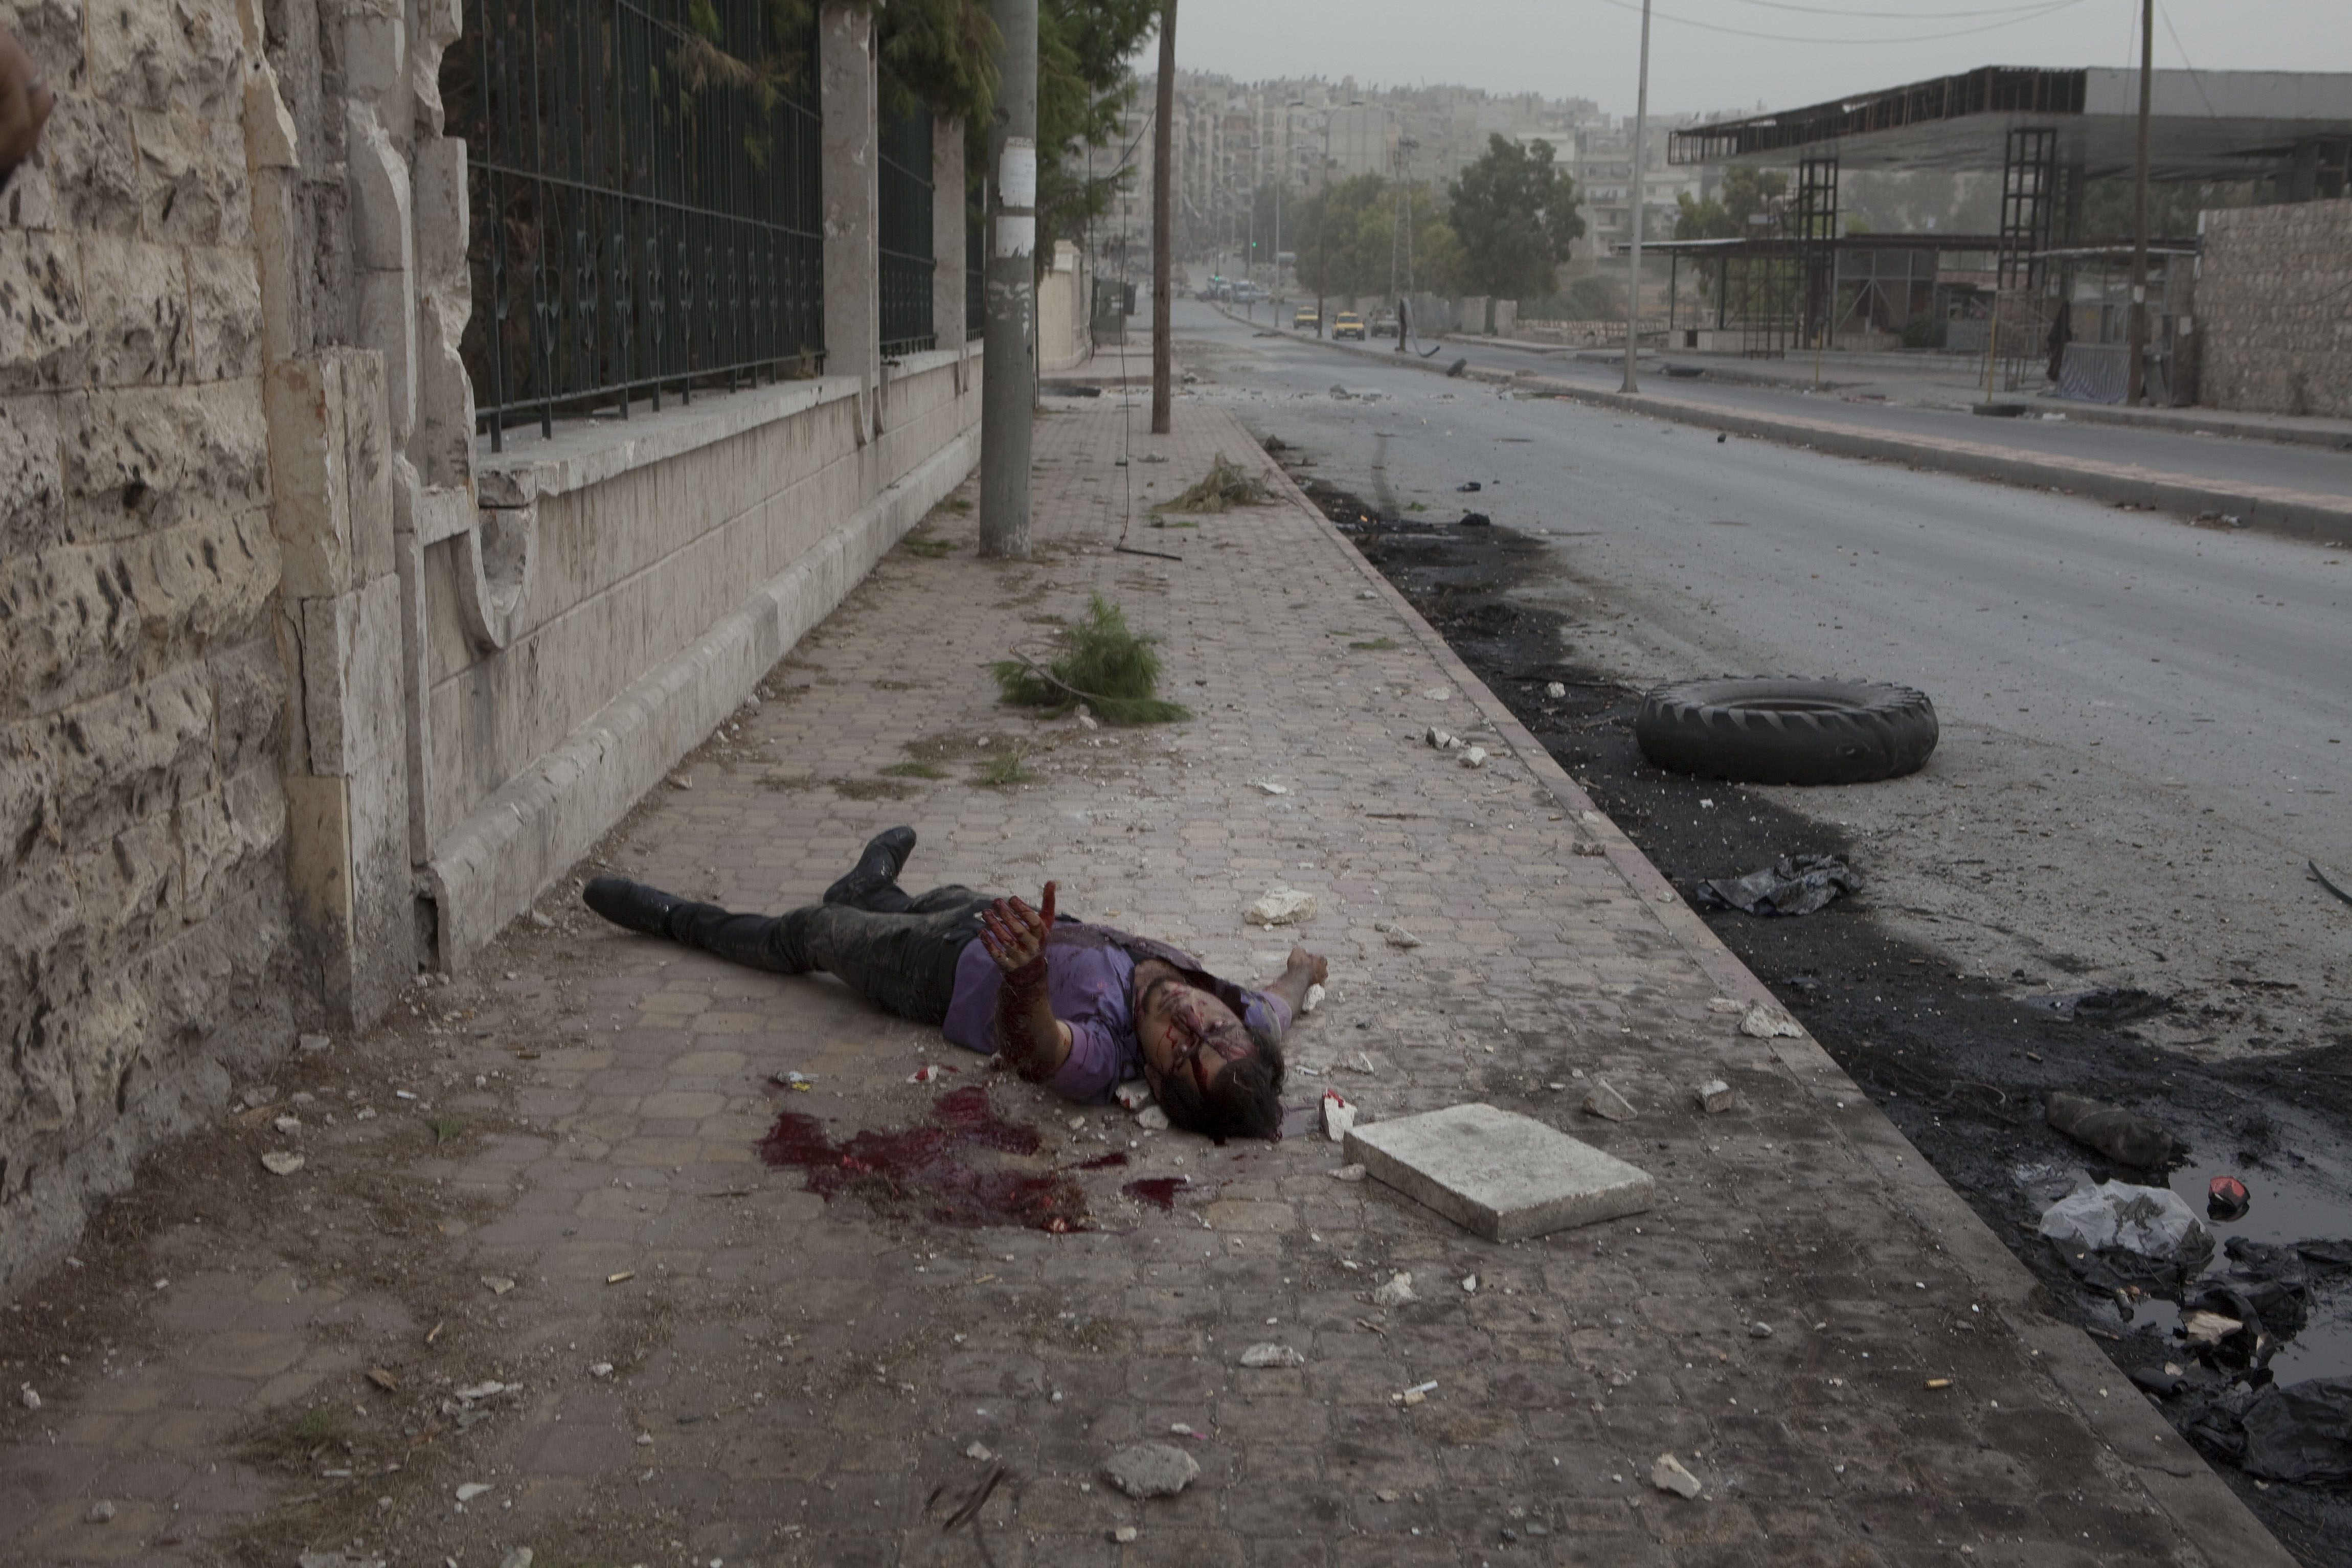 Jerome Sessini                                This 19-year-old civilian boy was shot in the throat by a Syrian sniper as he was crossing the avenue. It brought me roughly into one of the realities of war: that death strikes everyone, people like you and me. I assume that the short distance from the subject gives a partial and fragmented vision of reality, but in this kind of situation, it makes the difference between a good photo and an image that affects consciences.